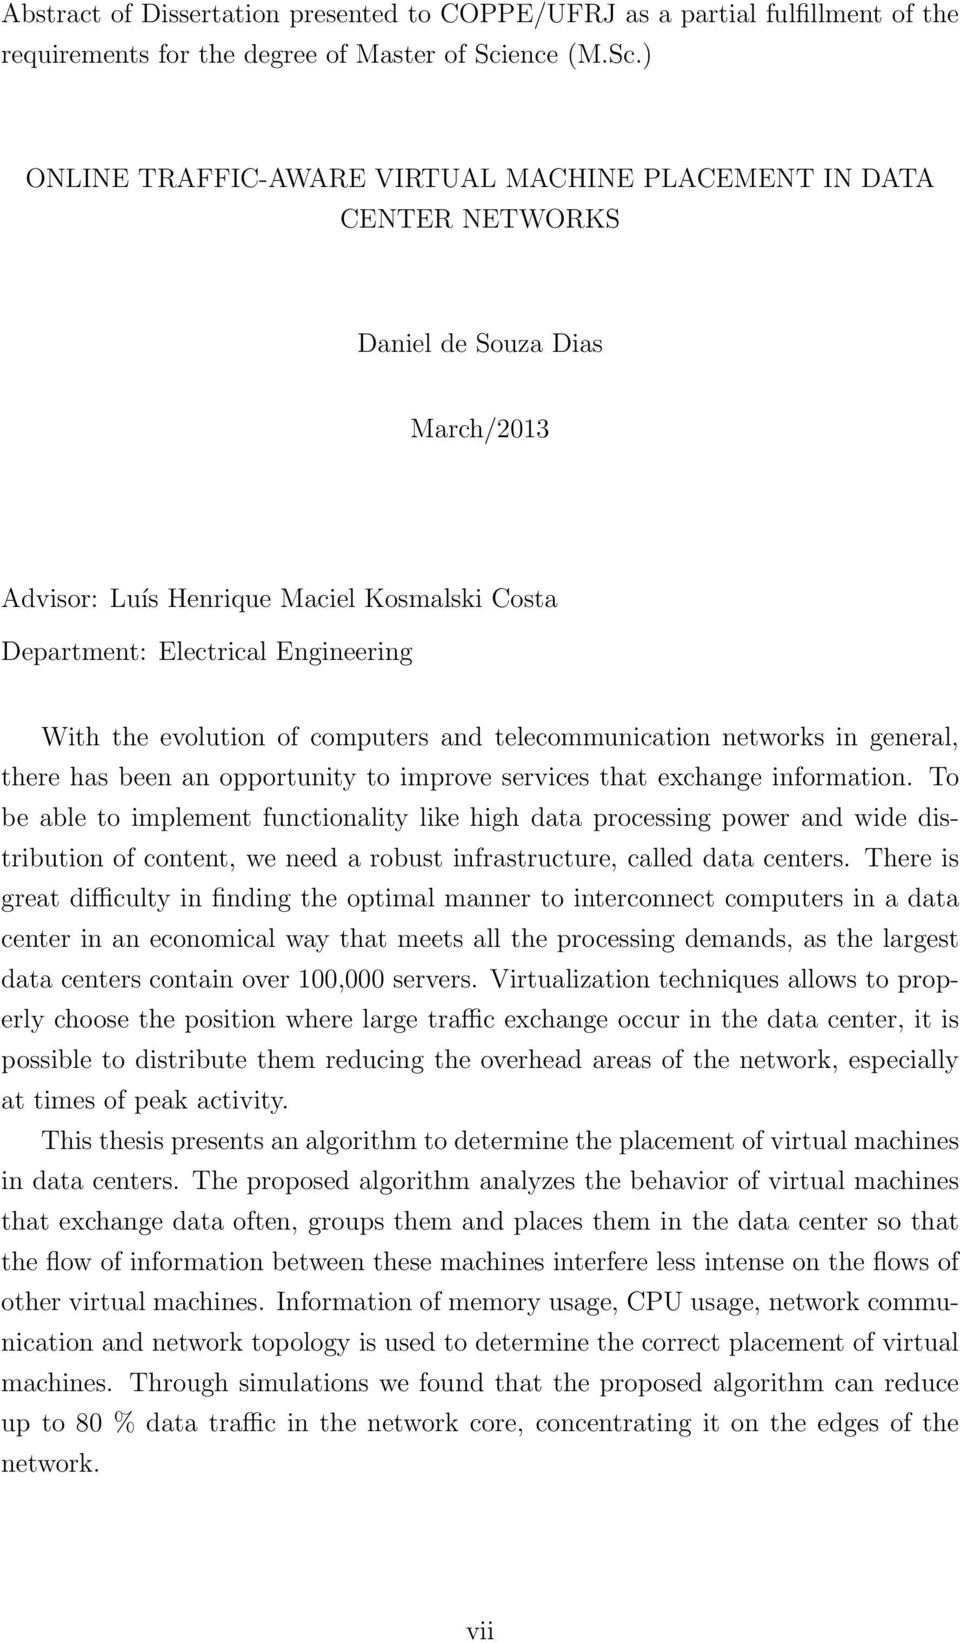 ) ONLINE TRAFFIC-AWARE VIRTUAL MACHINE PLACEMENT IN DATA CENTER NETWORKS Daniel de Souza Dias March/2013 Advisor: Luís Henrique Maciel Kosmalski Costa Department: Electrical Engineering With the